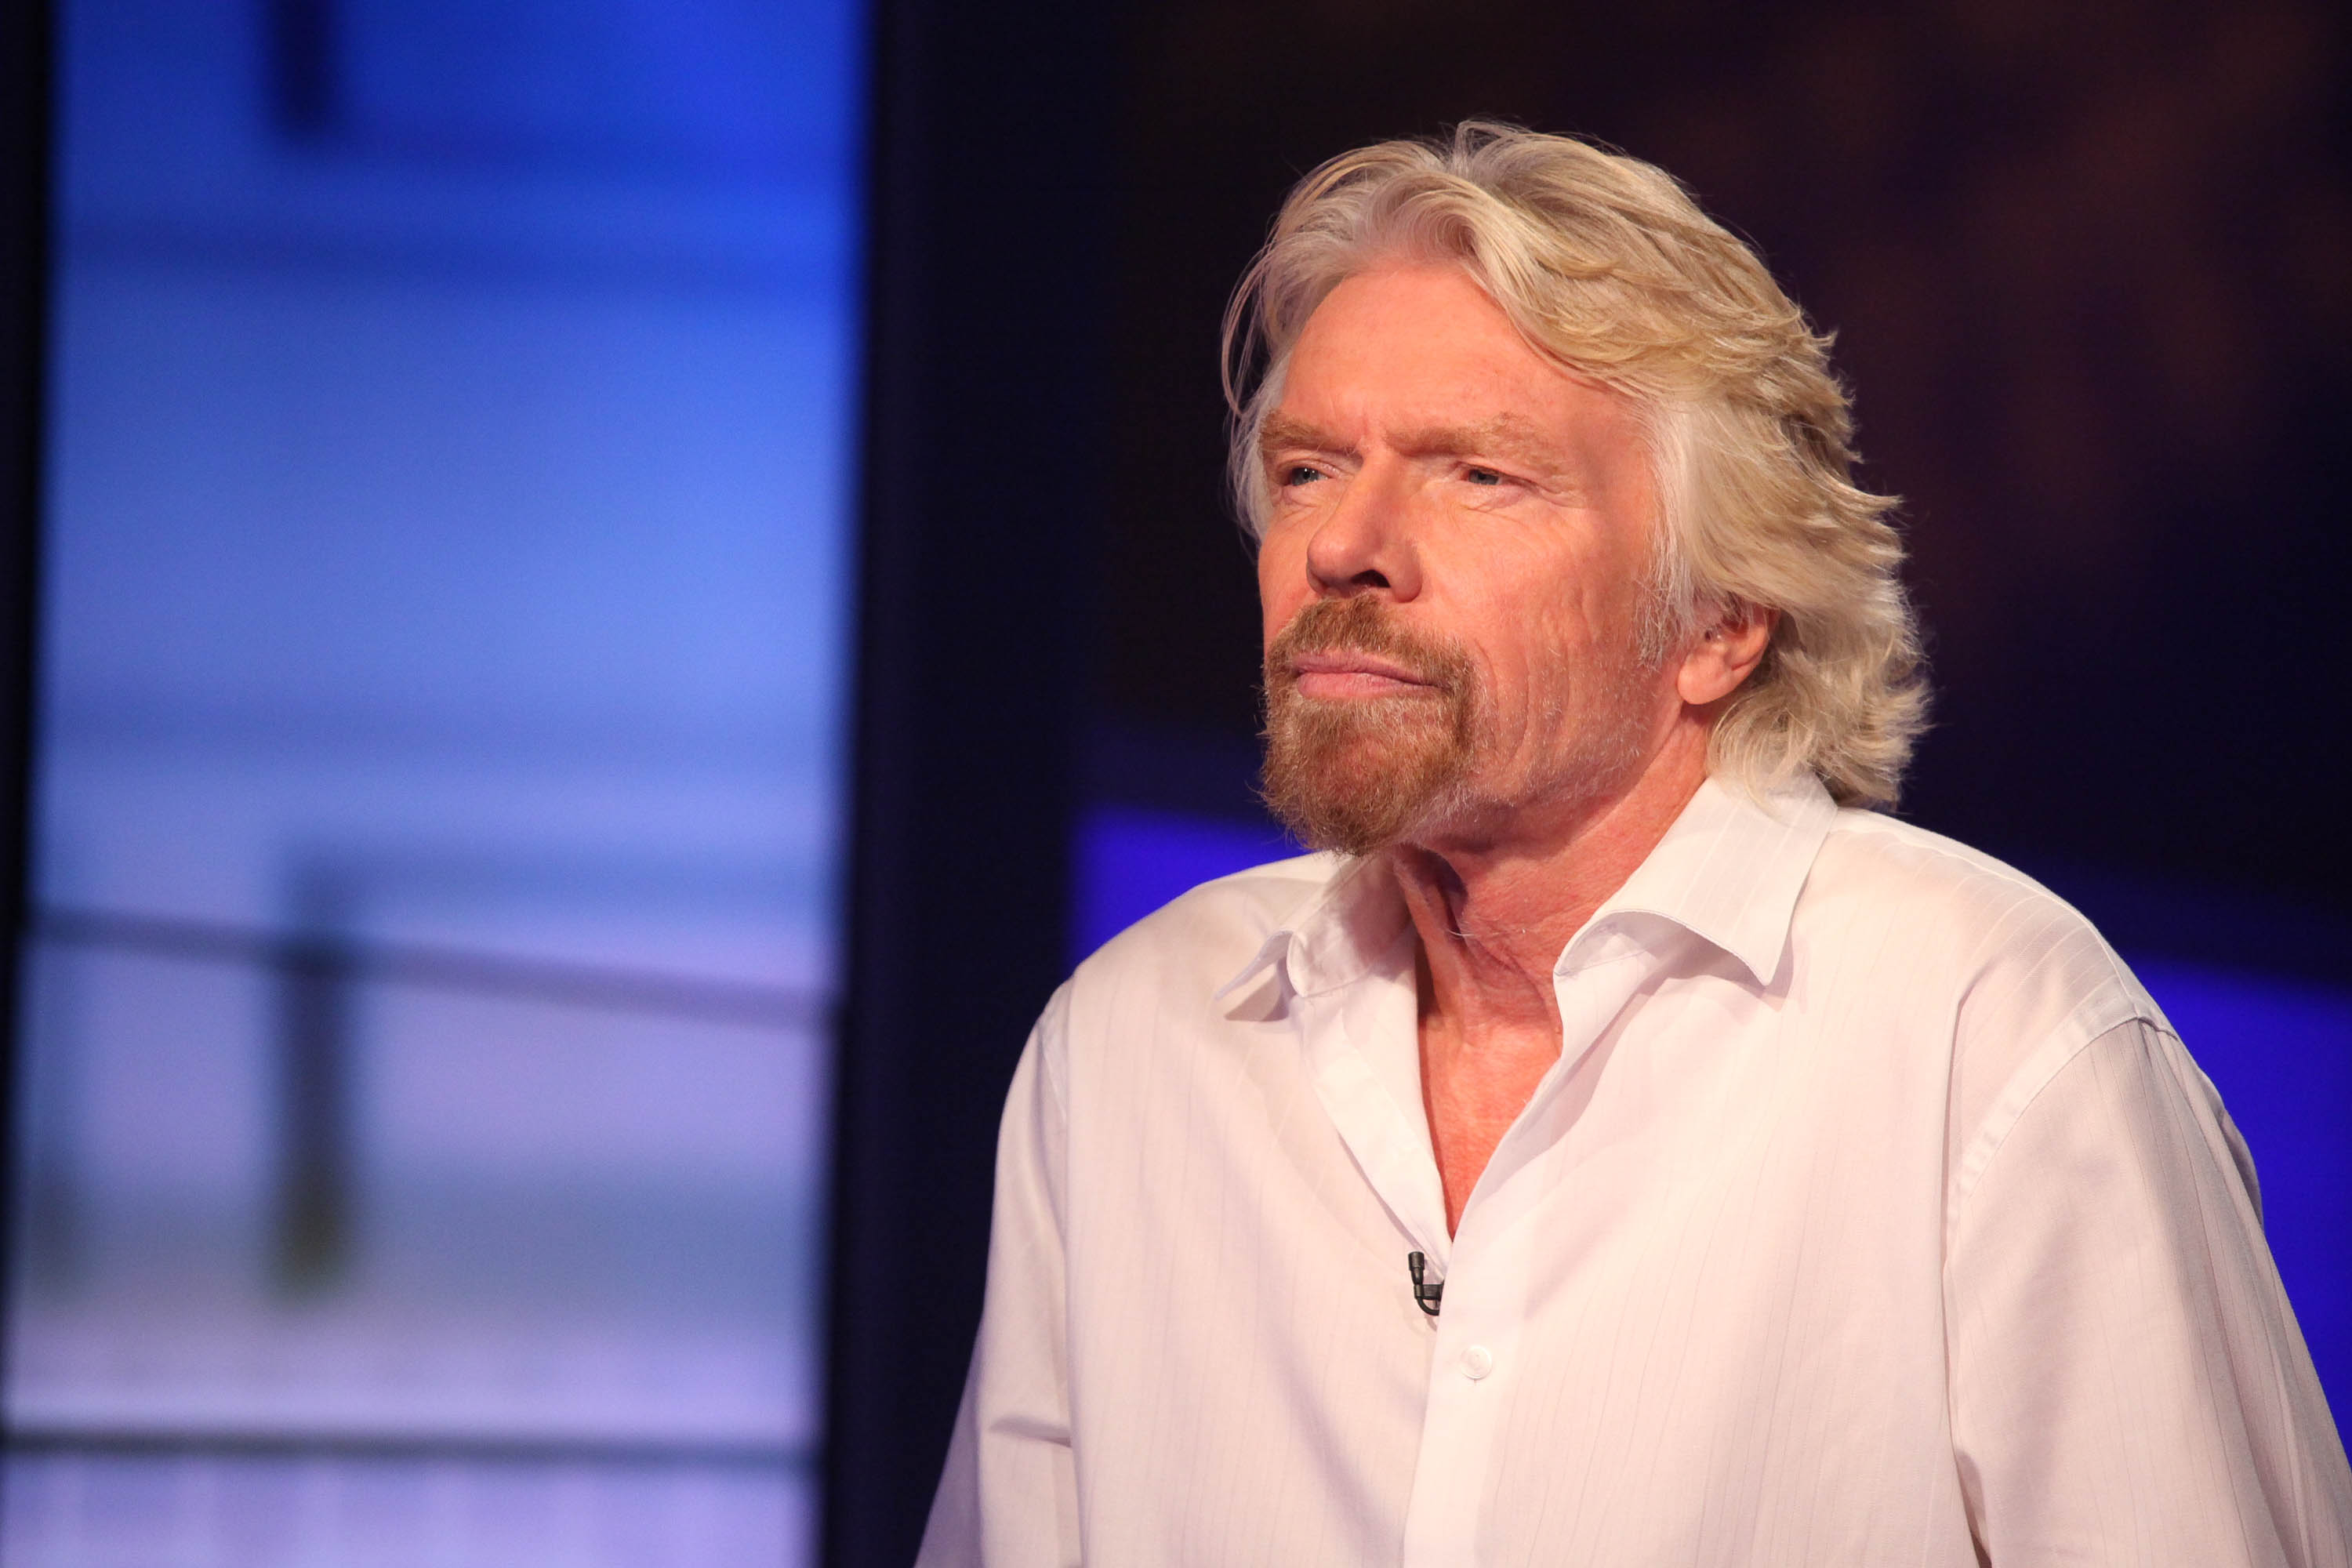 Richard Branson visits  Cavuto  On FOX Business Network in New York City on Sept. 23, 2014.